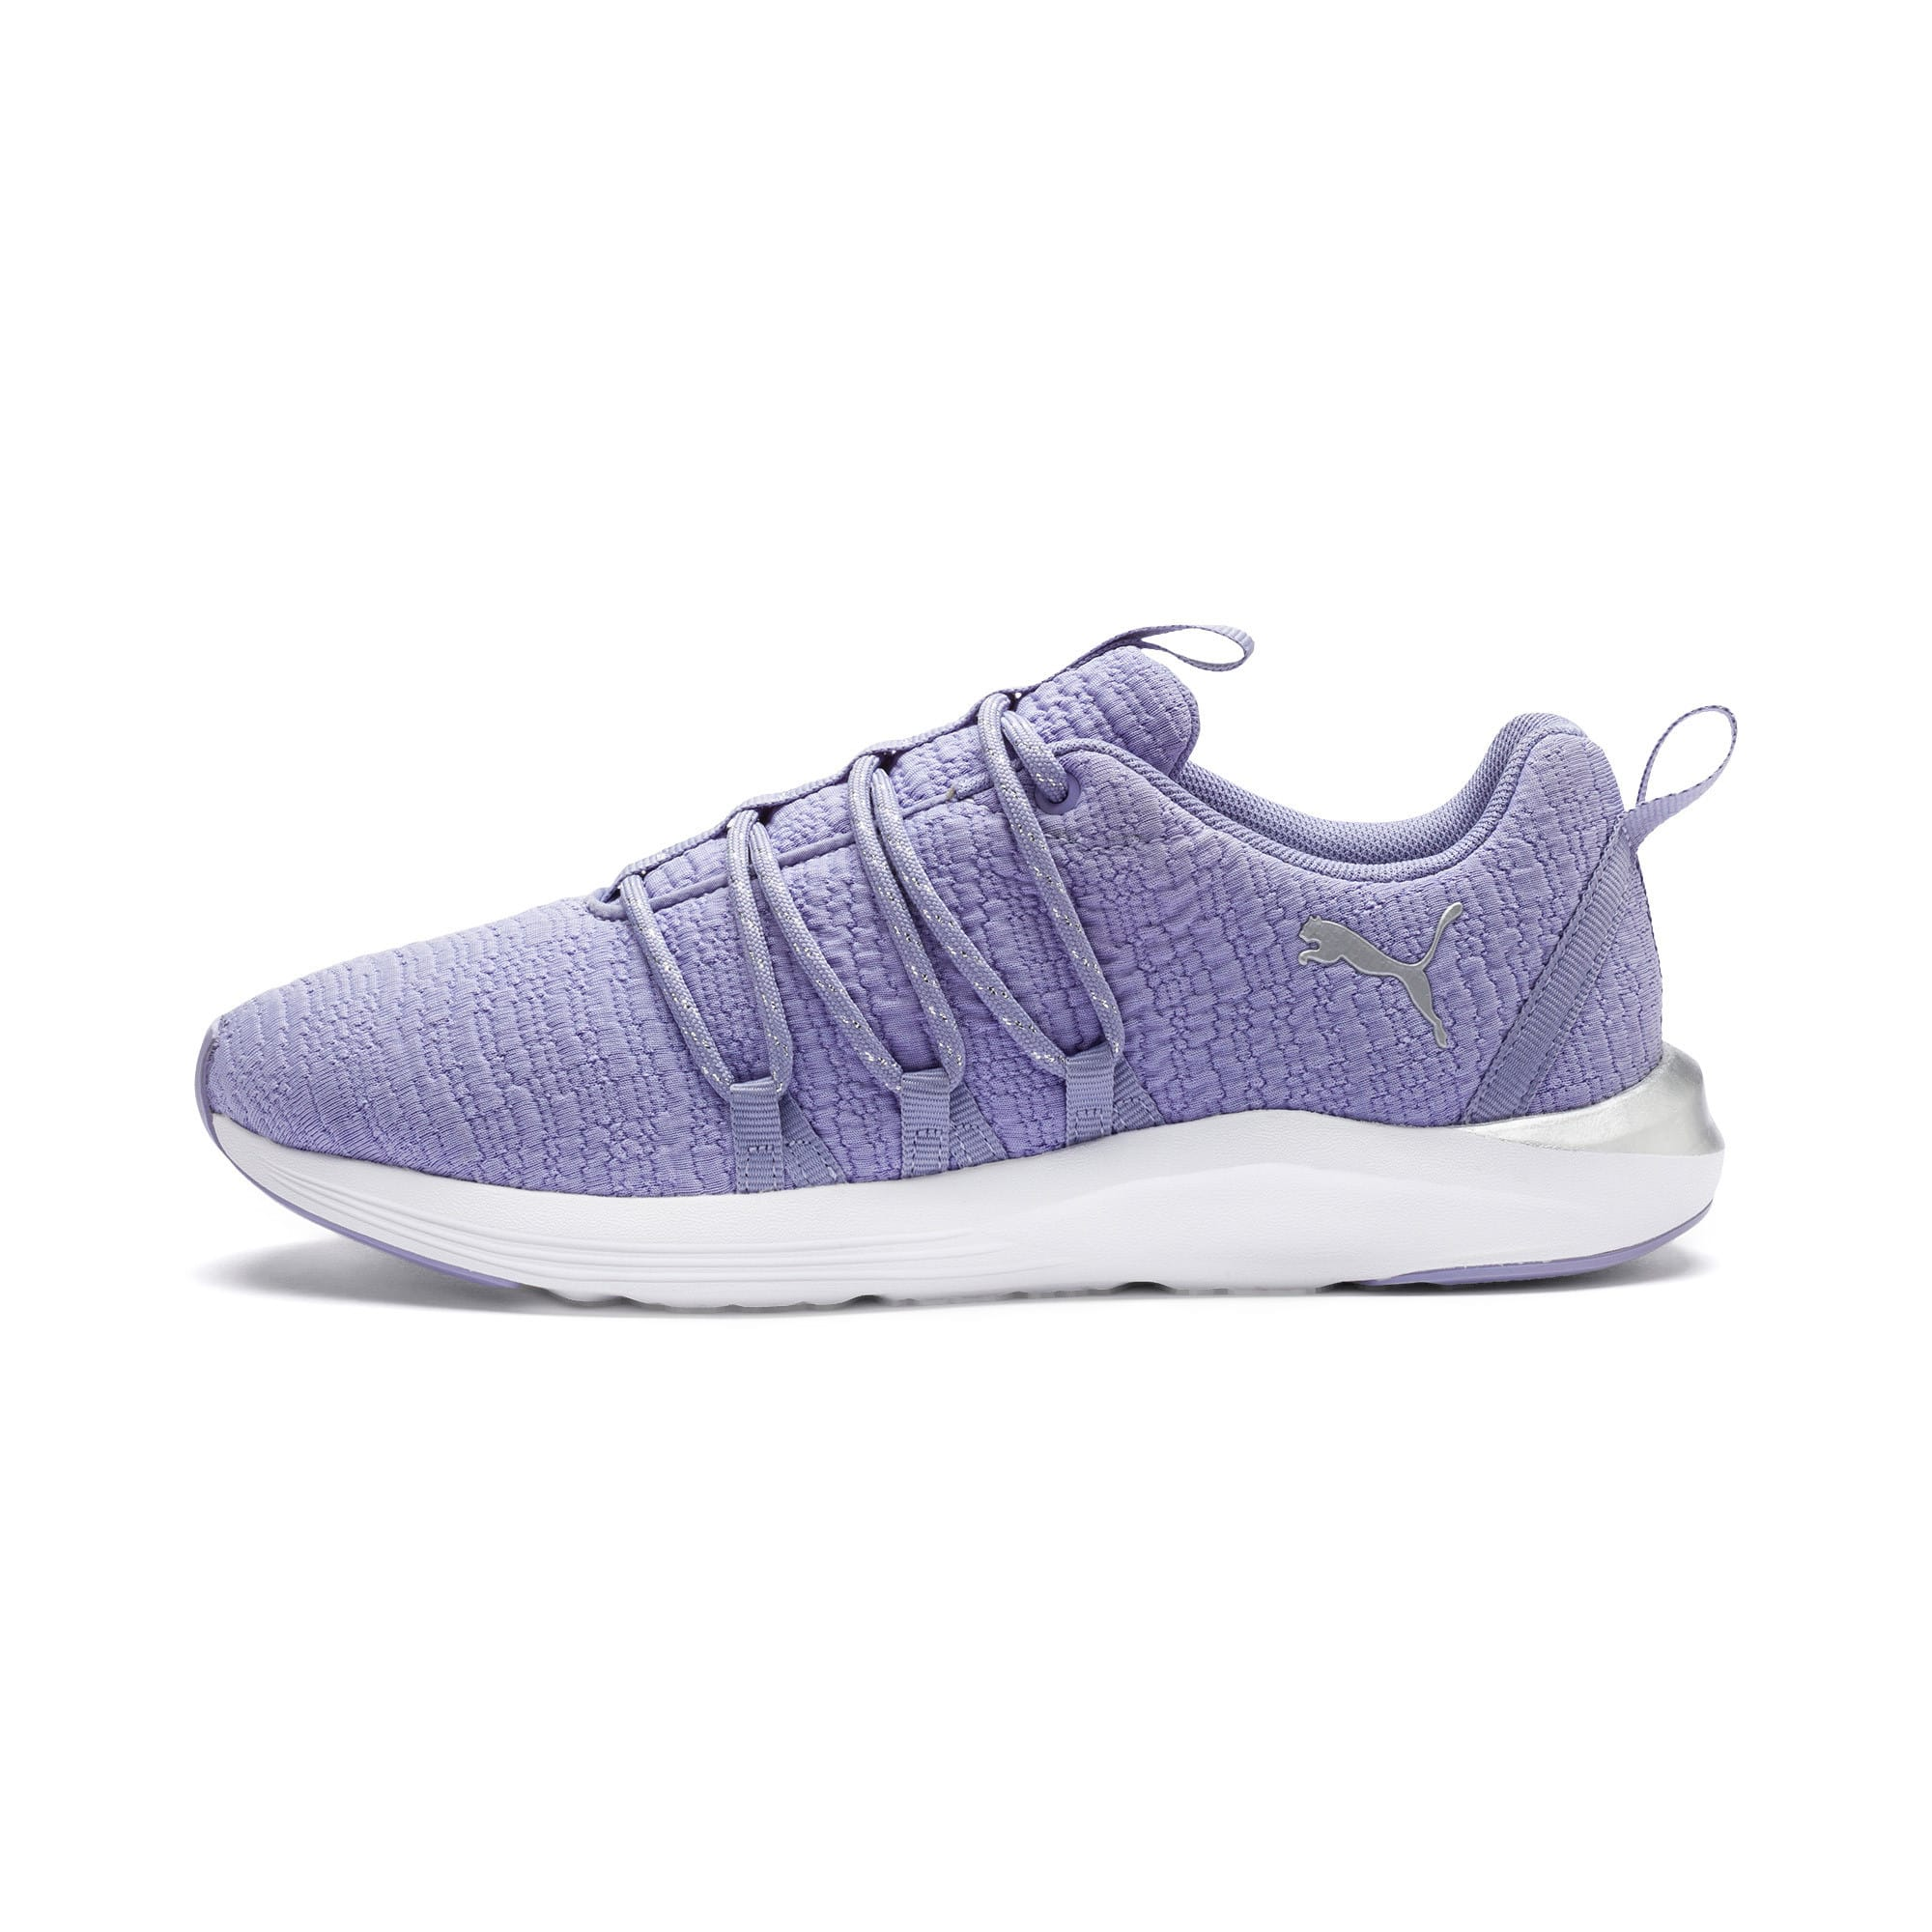 Thumbnail 1 of Prowl Alt Metallic Women's Training Shoes, Sweet Lavender-Puma White, medium